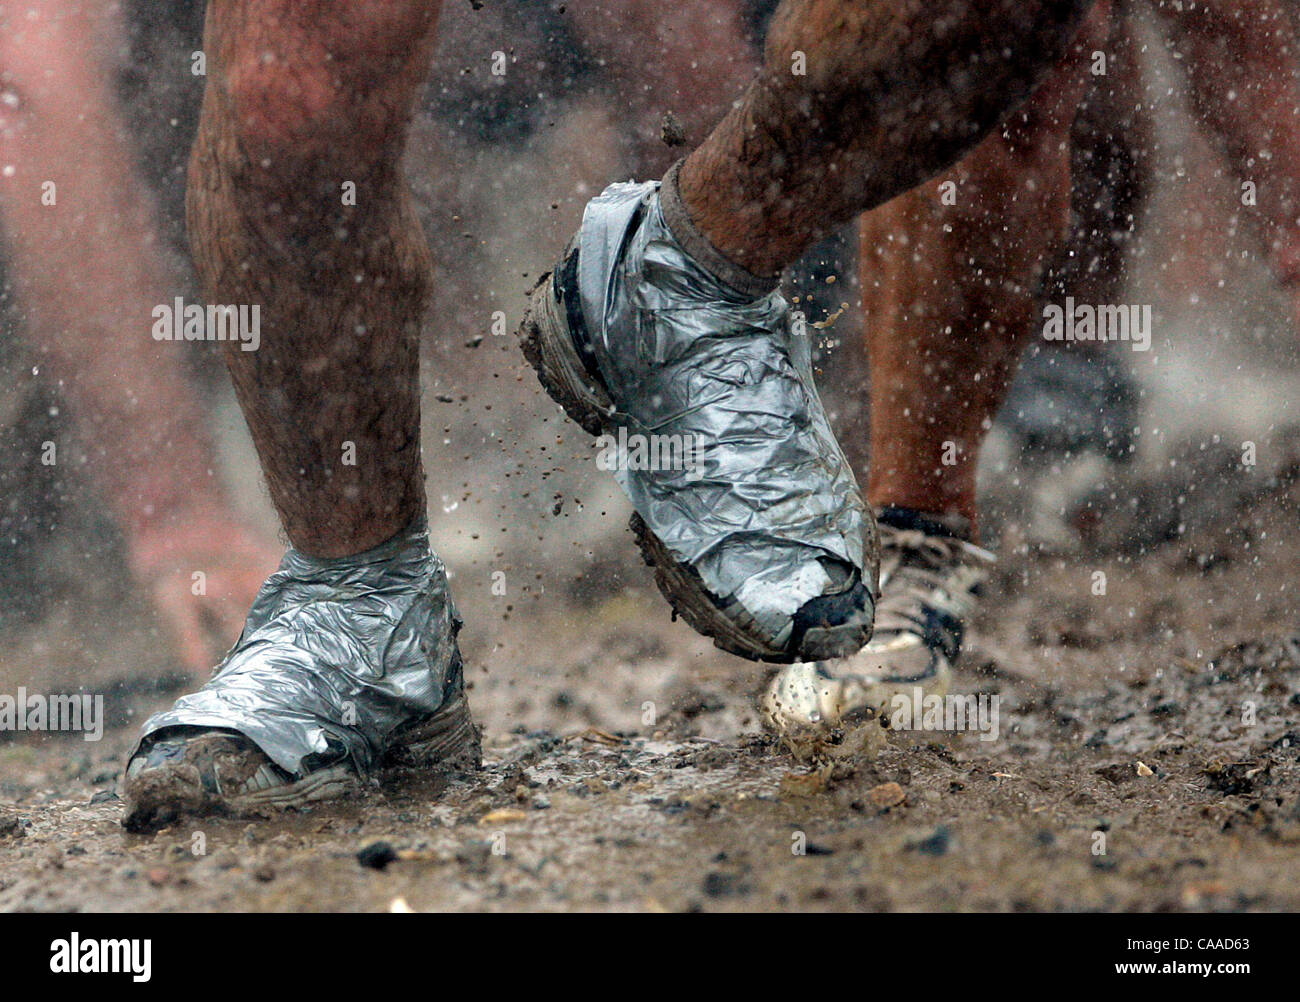 Duct Tape Shoes For Mud Run